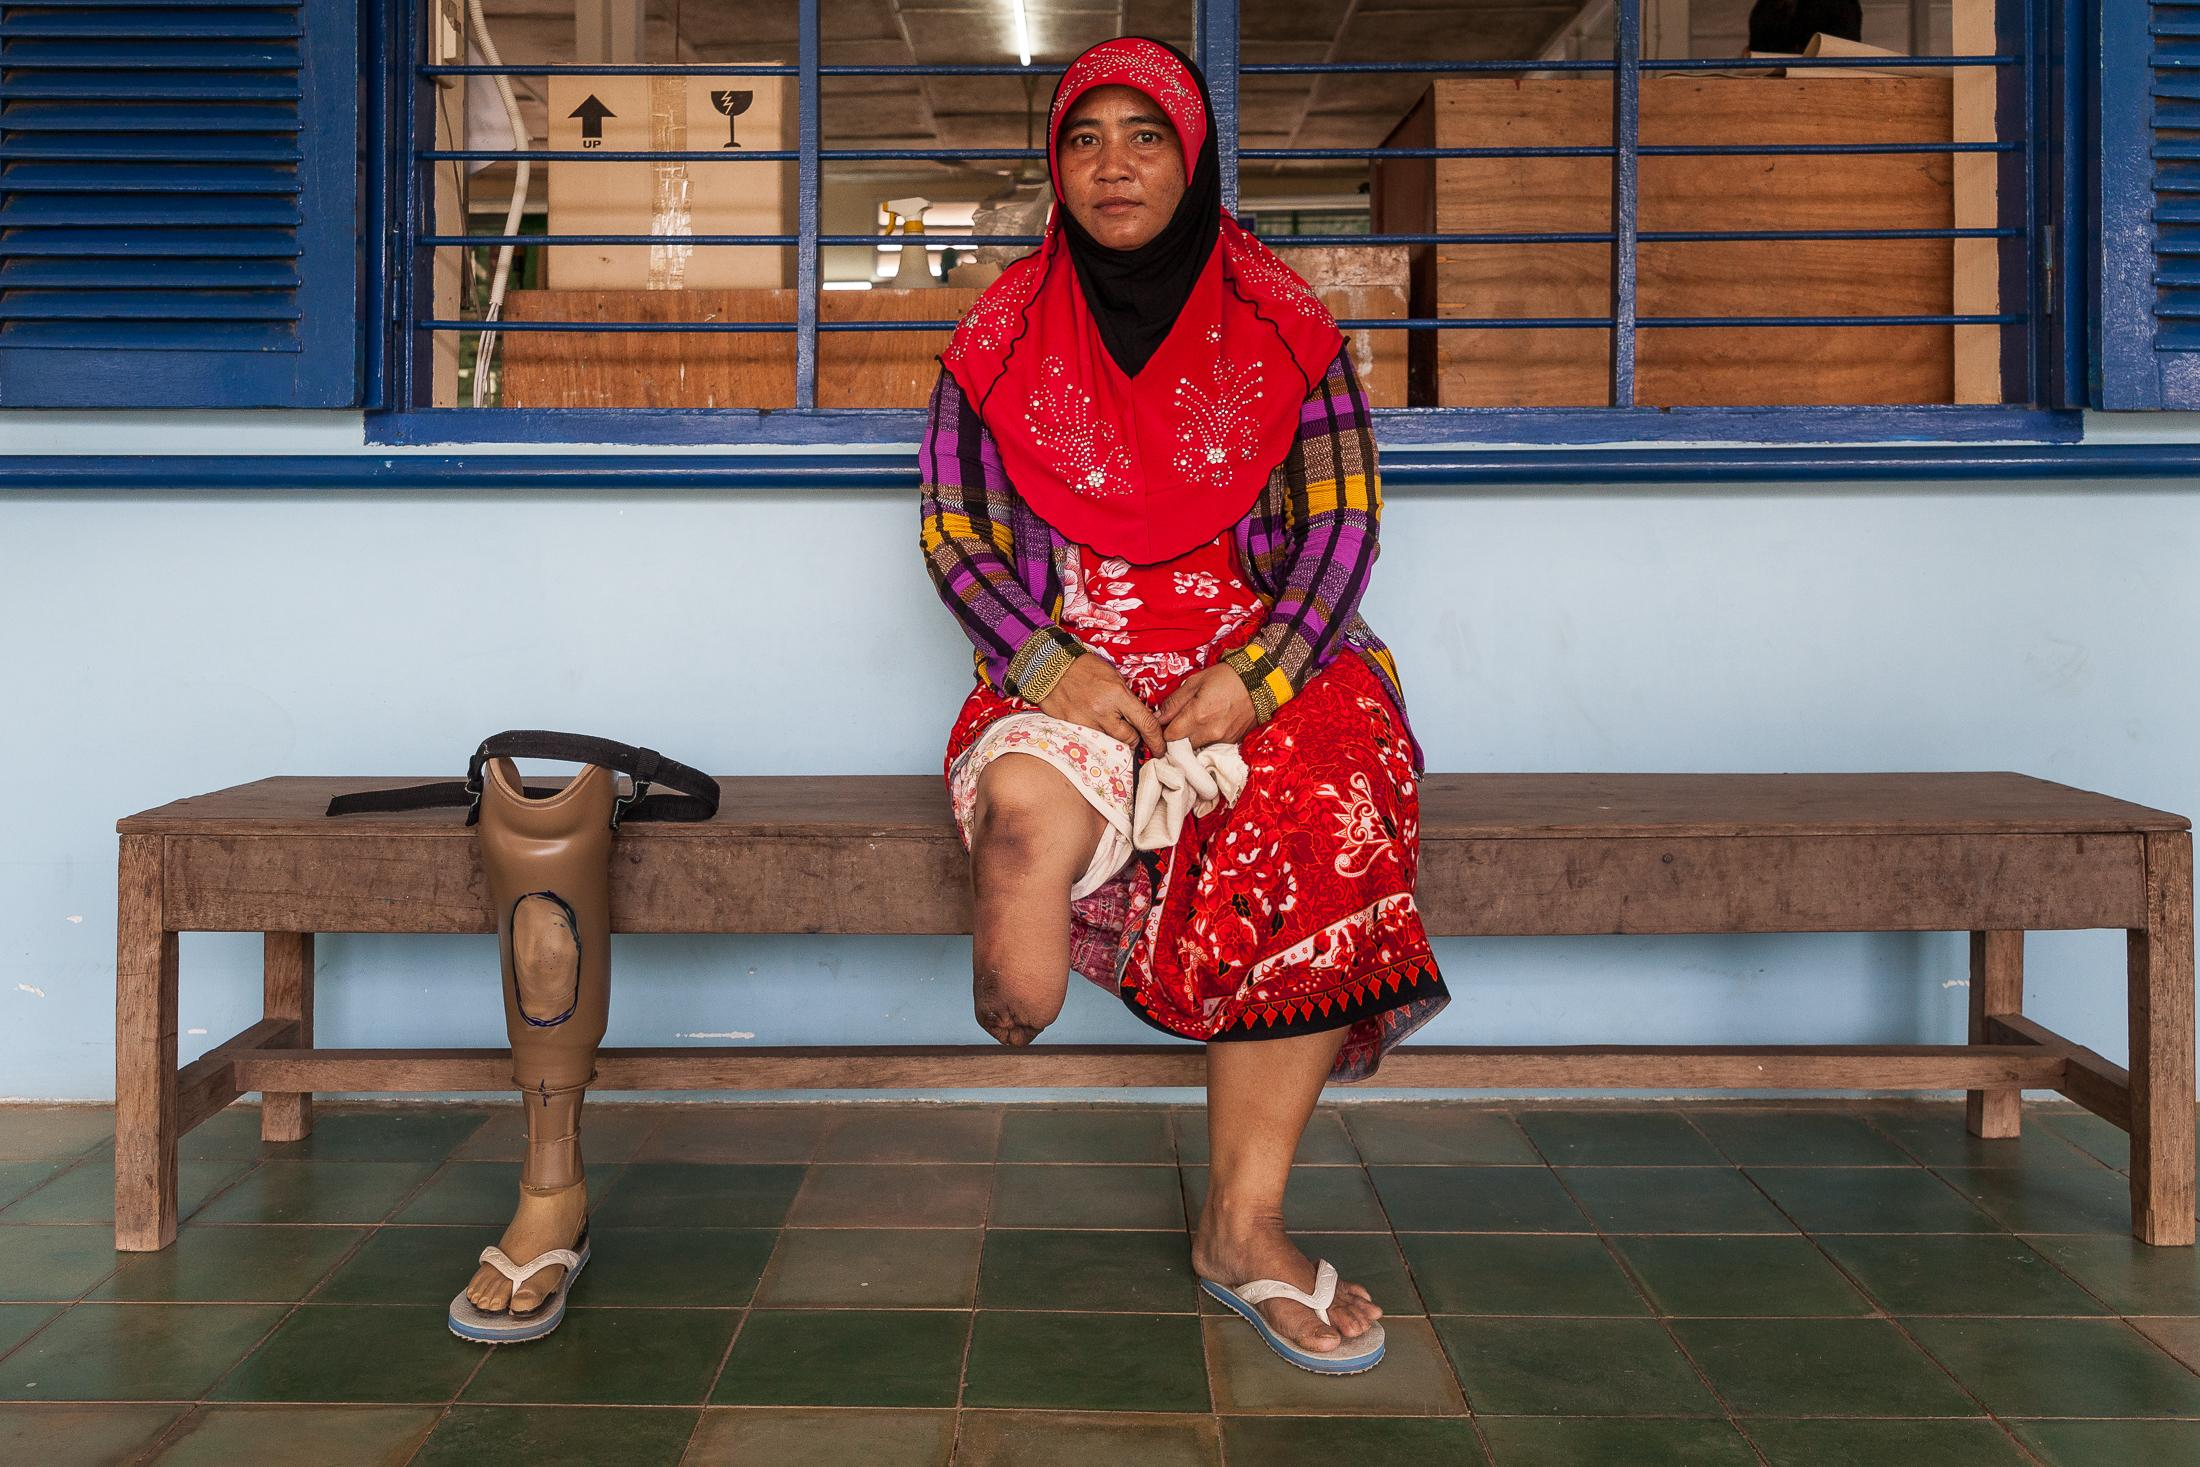 KAMPONG CHAM, CAMBODIA - JANUARY 17: A woman poses with her prosthetic in the Handicap International Rehabilitation center on January 17, 2014 in Kampong Cham, Cambodia. Cambodia is one of the most heavily mined countries in the world; some estimate that there are as many as ten million mines in a country of 14.5 million people. Handicap International has been working in Cambodia for almost 30 years, supporting people with disabilities and victims of chronic diseases. The organization gives priority to these people, working on injuries prevention. Prosthetic and rehabilitation are part of the main focus actions, which they have been doing in their physiotherapy center in Kampong Cham since 2002. The number of beneficiaries has increased enormously since then, accompanied by a rise in orthotic and prosthetic production. Photo: © Omar Havana / Getty Images